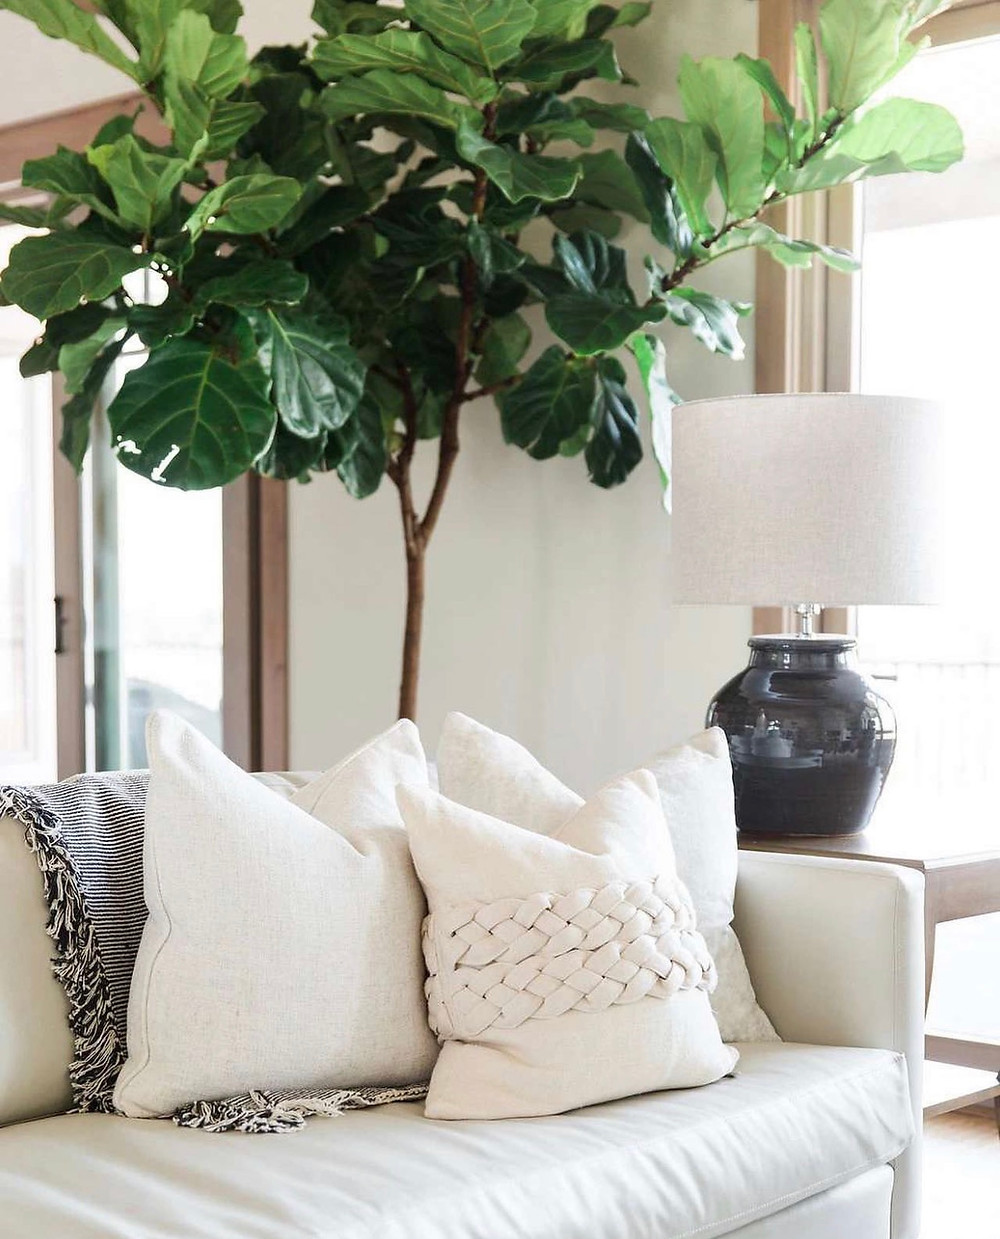 They do a great job with finishing touches. Here are some white linen pillows which are a great option for the Spring/Summer months.